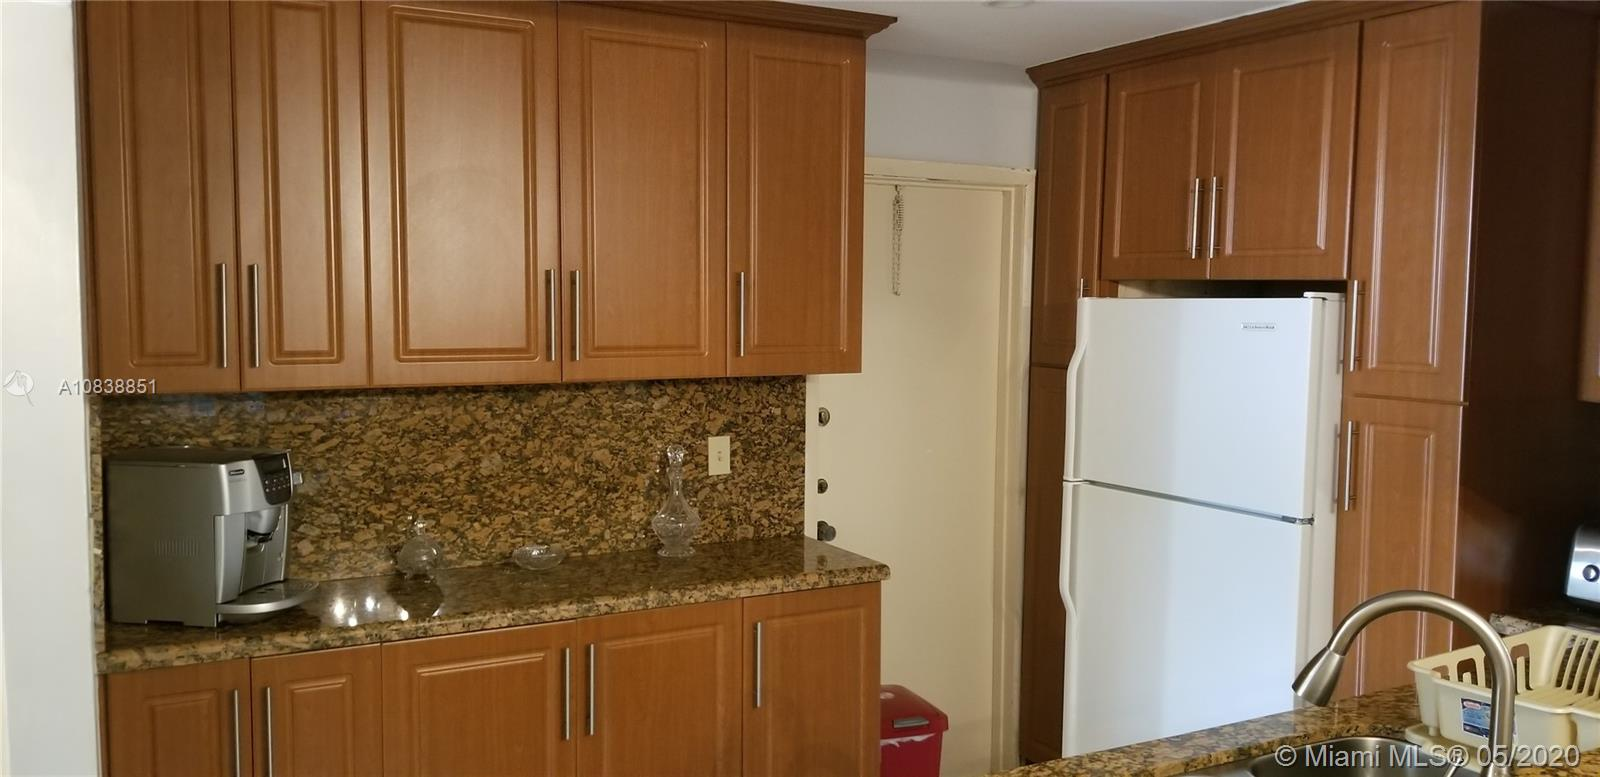 Tastefully remodelled  2/2  corner unit condo in the Emerald building in Oakland Estates. The kitchen  upgrades featuring wood cabinet and granite counter tops !!!. Very spacious unit with tile throughout and huge tiled balcony !! Community offers many amenities including a heated pool, fitness room, card rooms, shuffleboard, bocce courts, and tennis courts!!